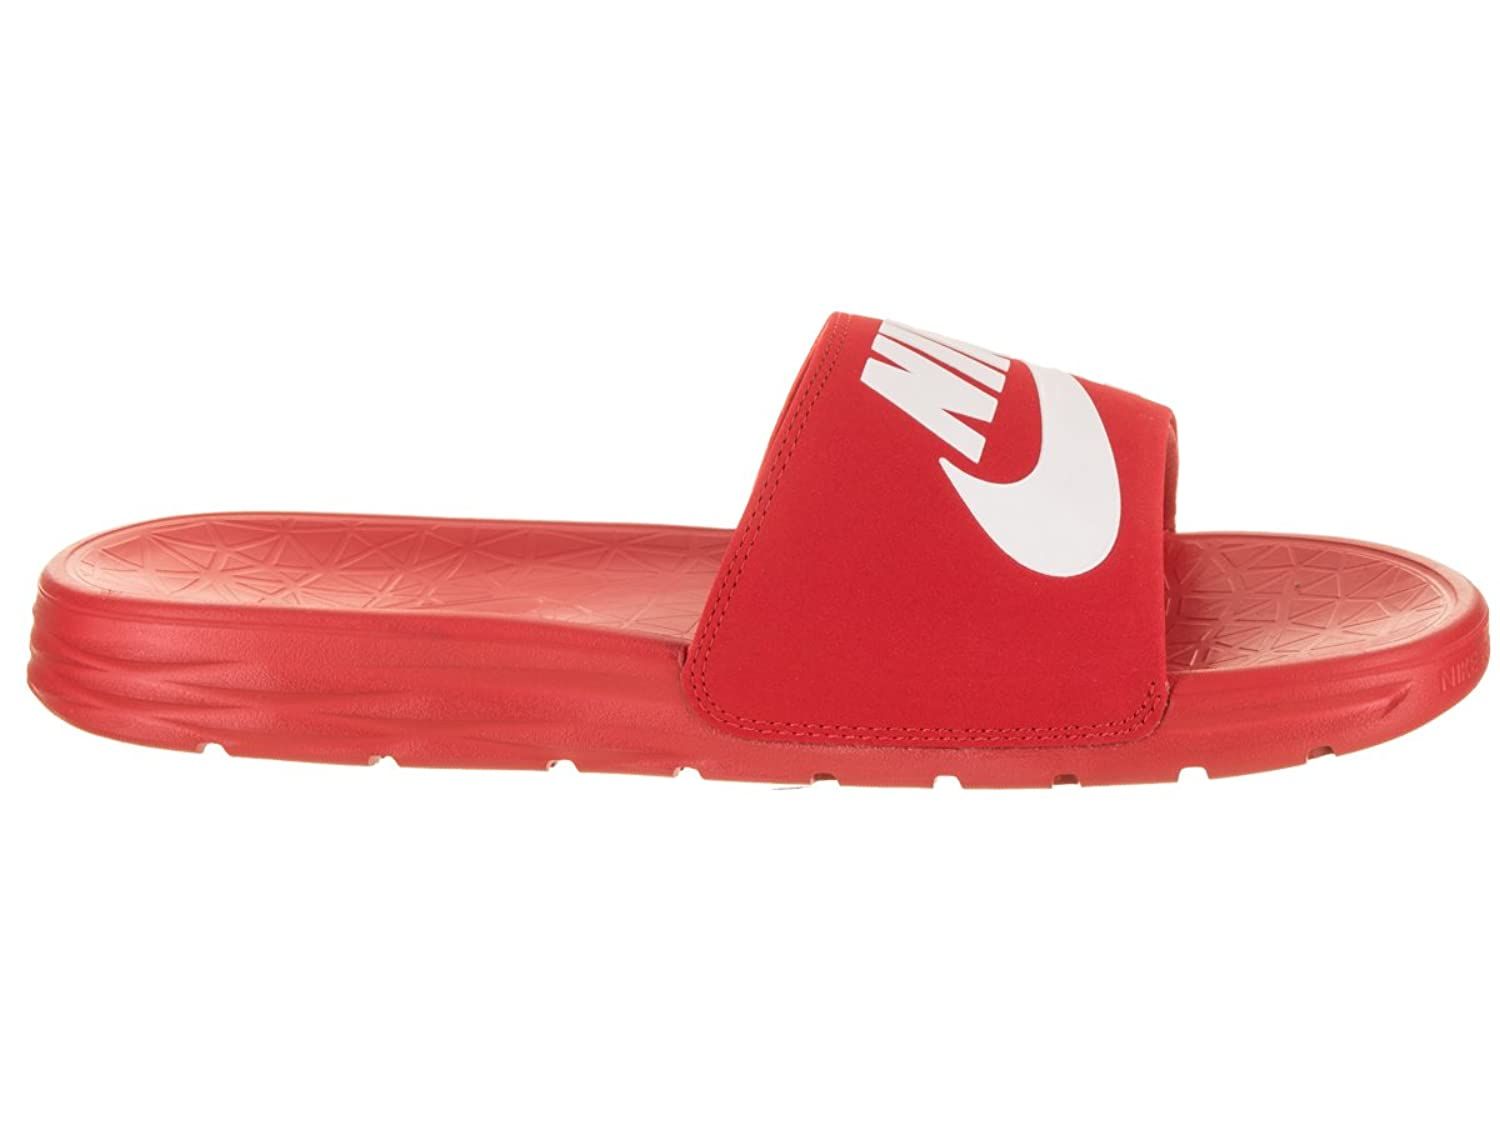 pretty nice 7ddaf a05ad Nike Benassi Solarsoft SB, Chaussures de Plage et Piscine Homme, Rouge  (University Red